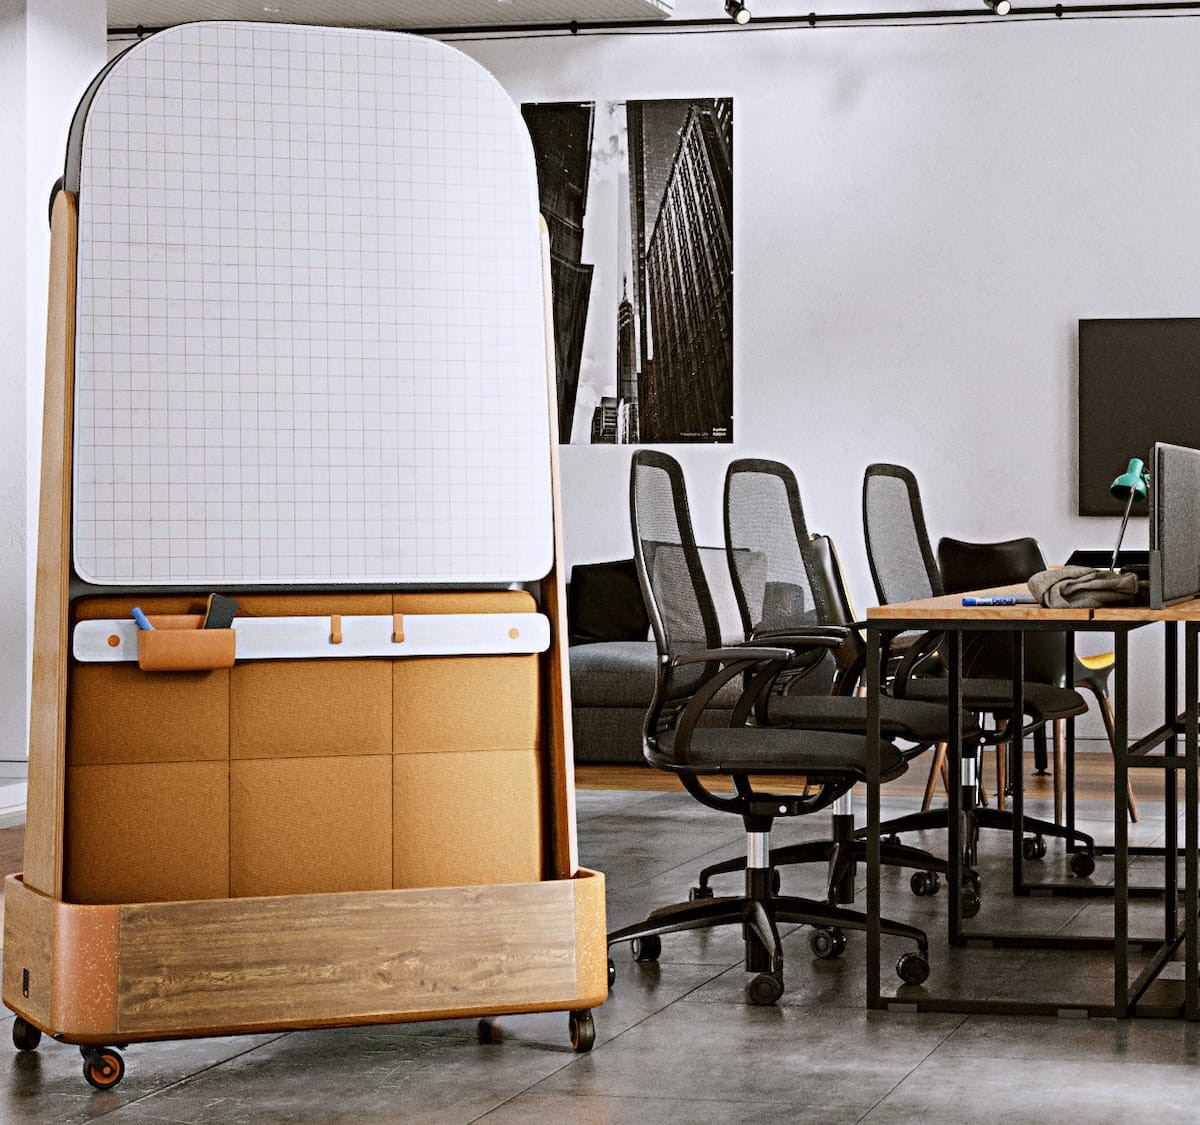 OMI whiteboard room divider features sound-absorbent pads